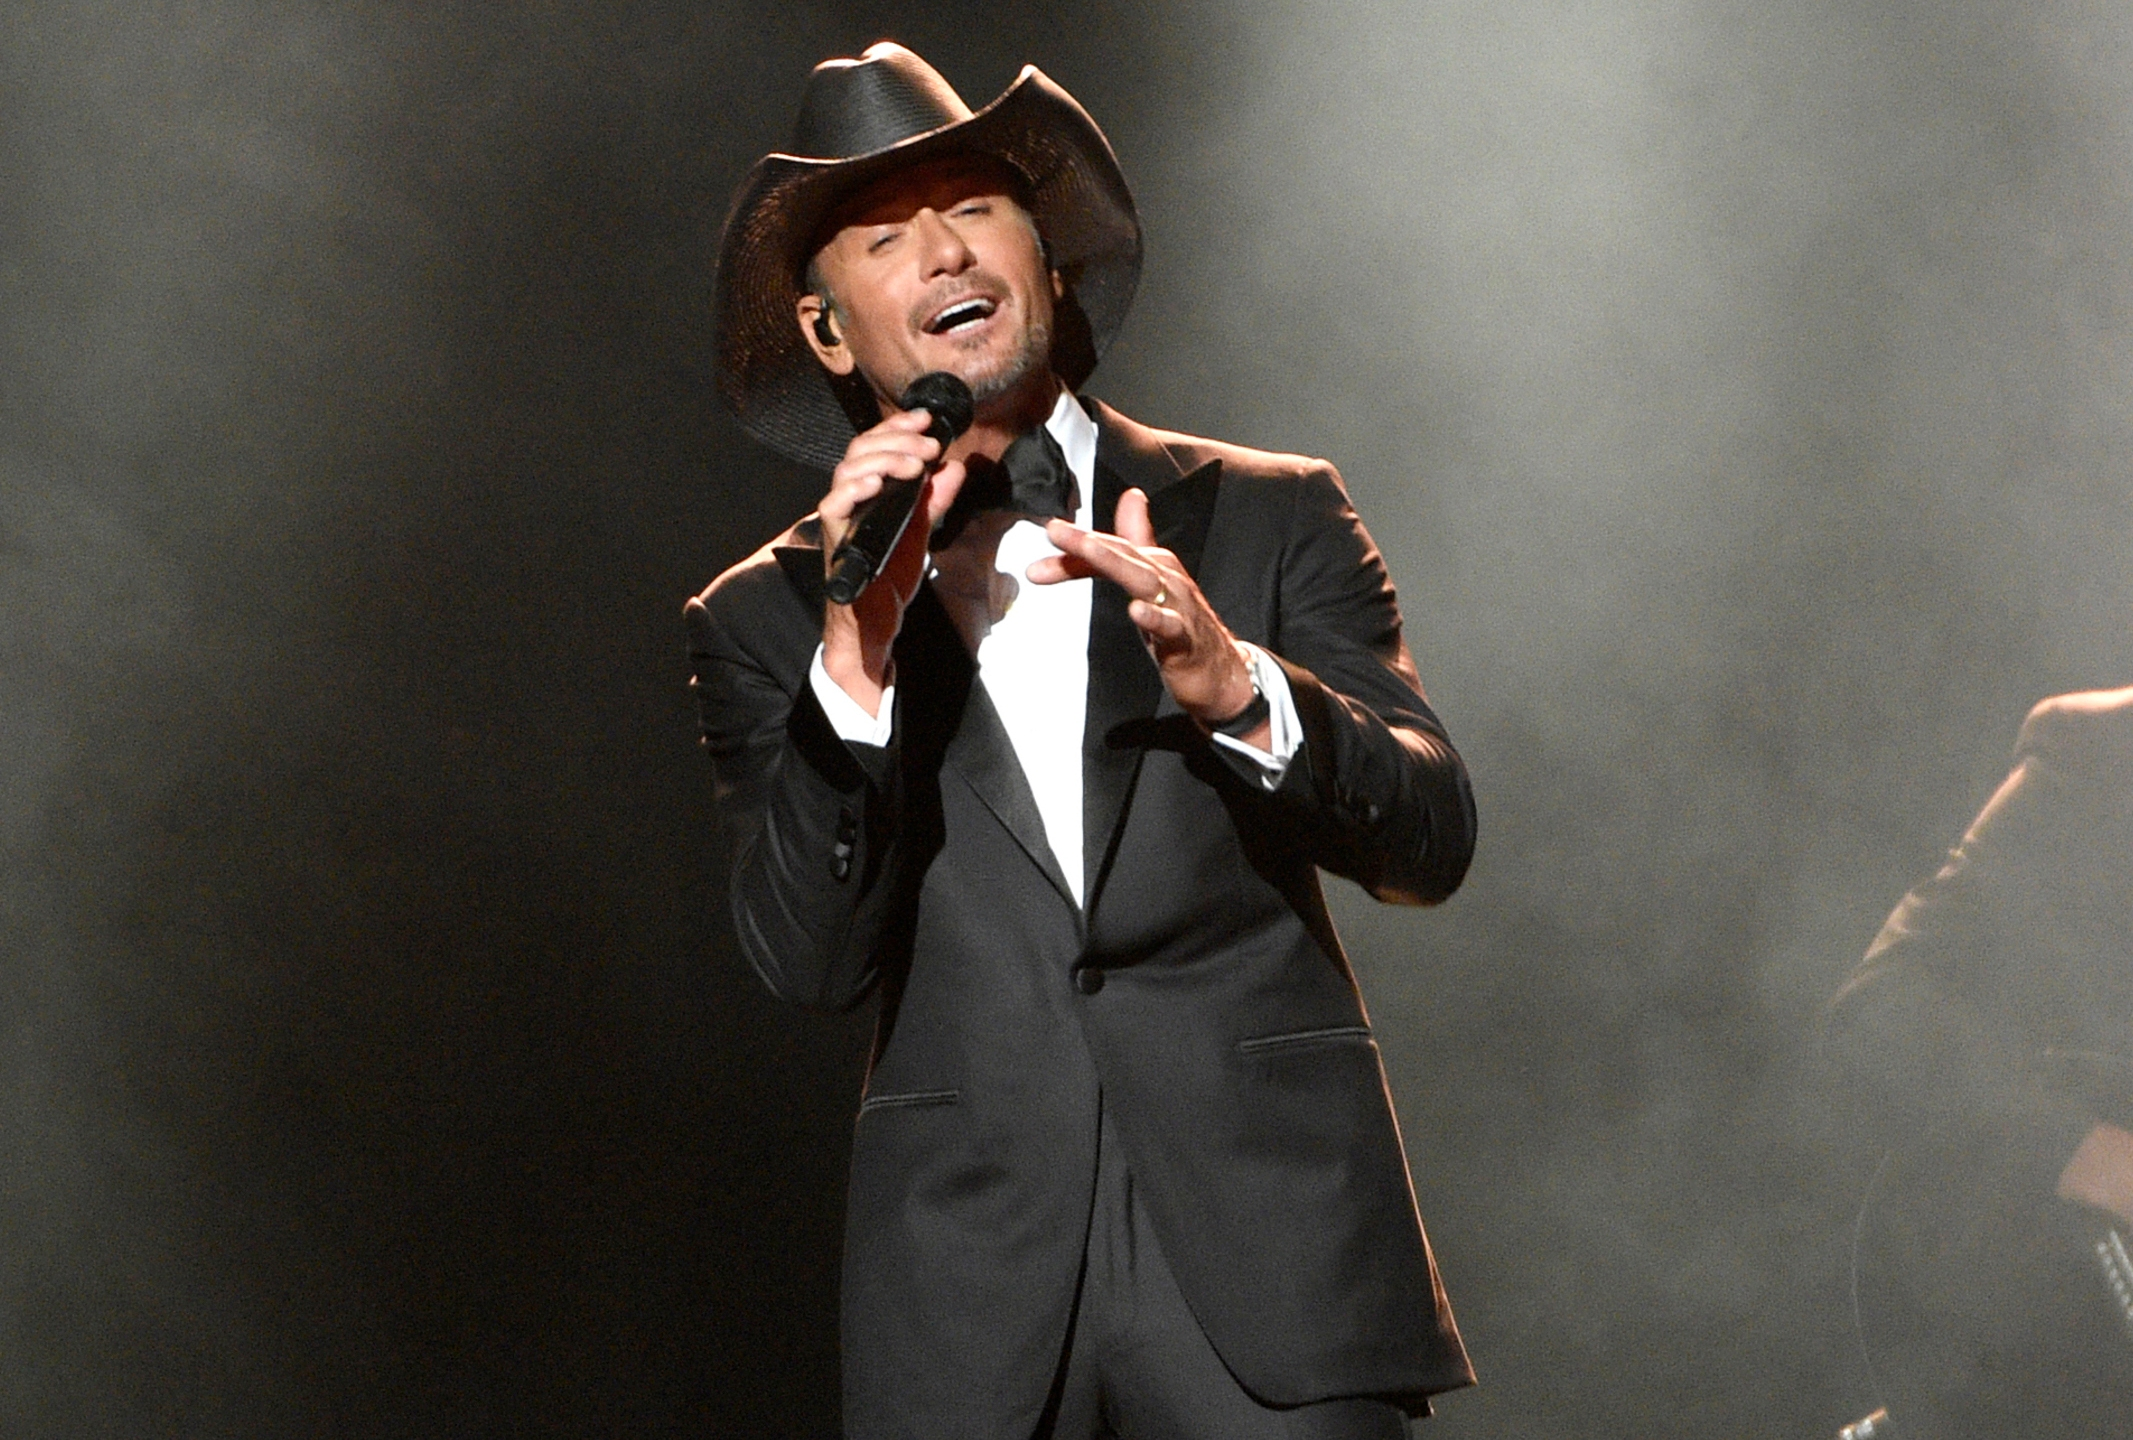 People-Tim_McGraw_23663-159532.jpg10263034